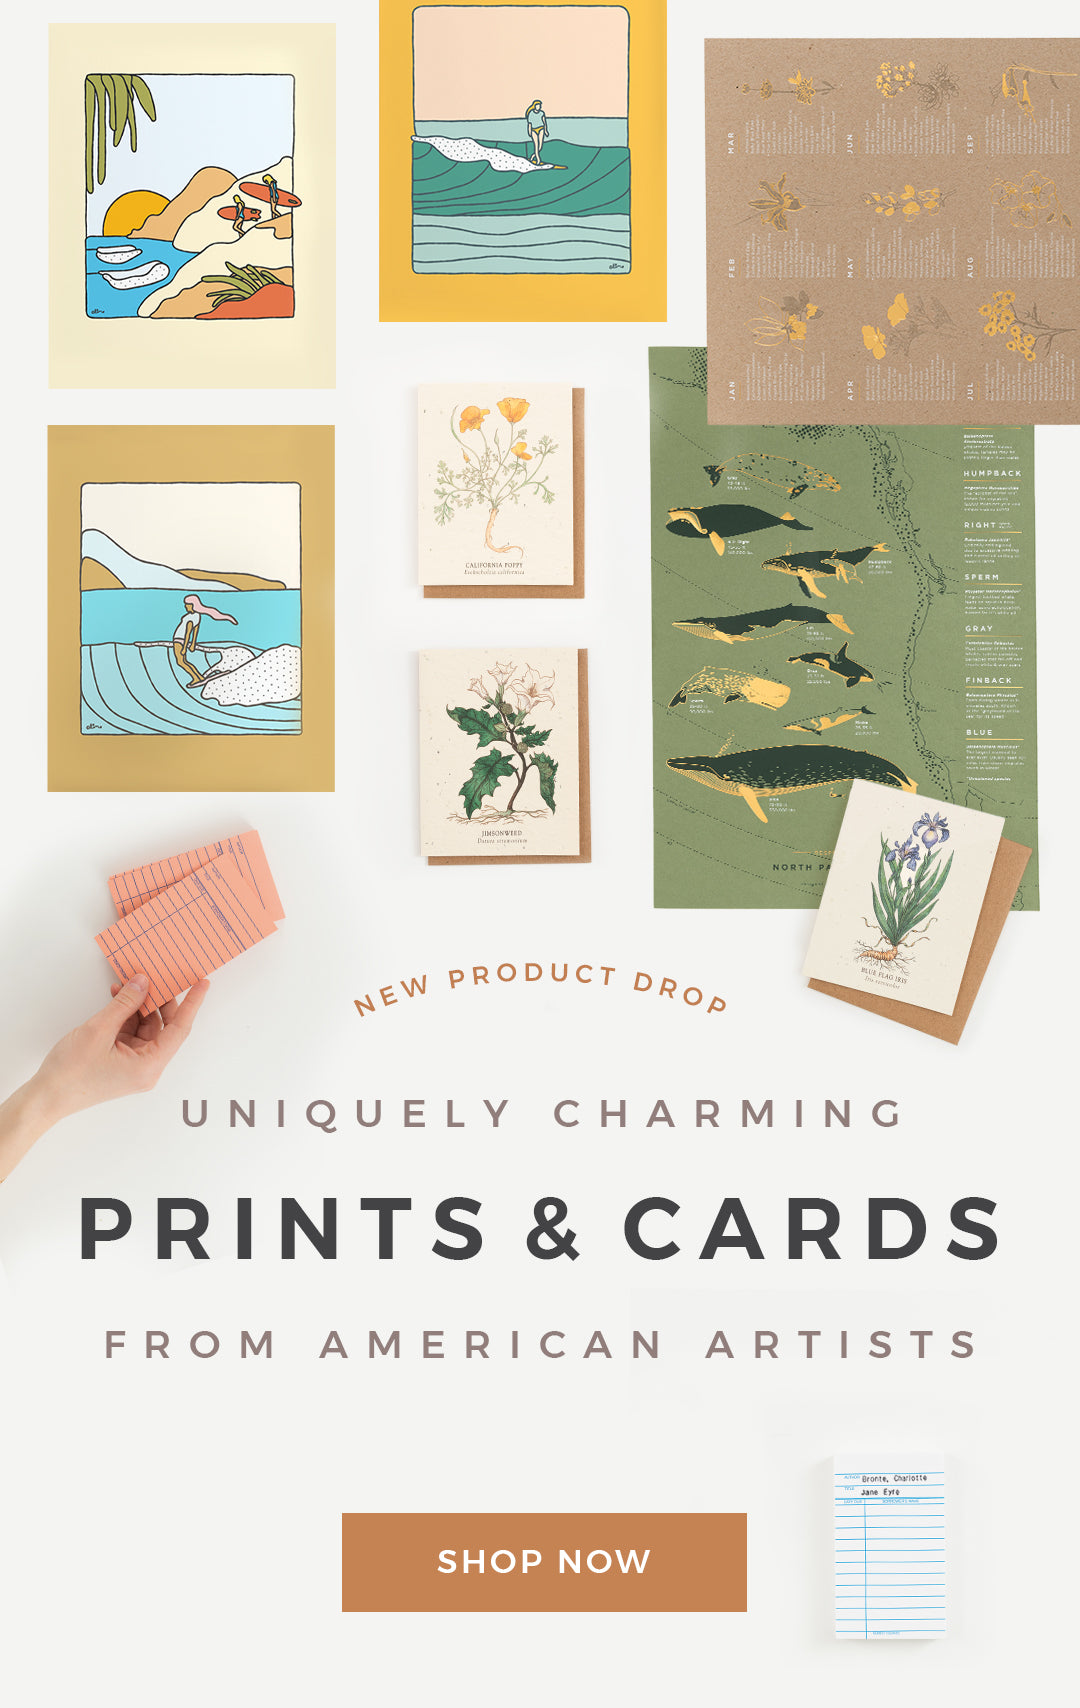 Uniquely Charming Prints & Cards from American Artists